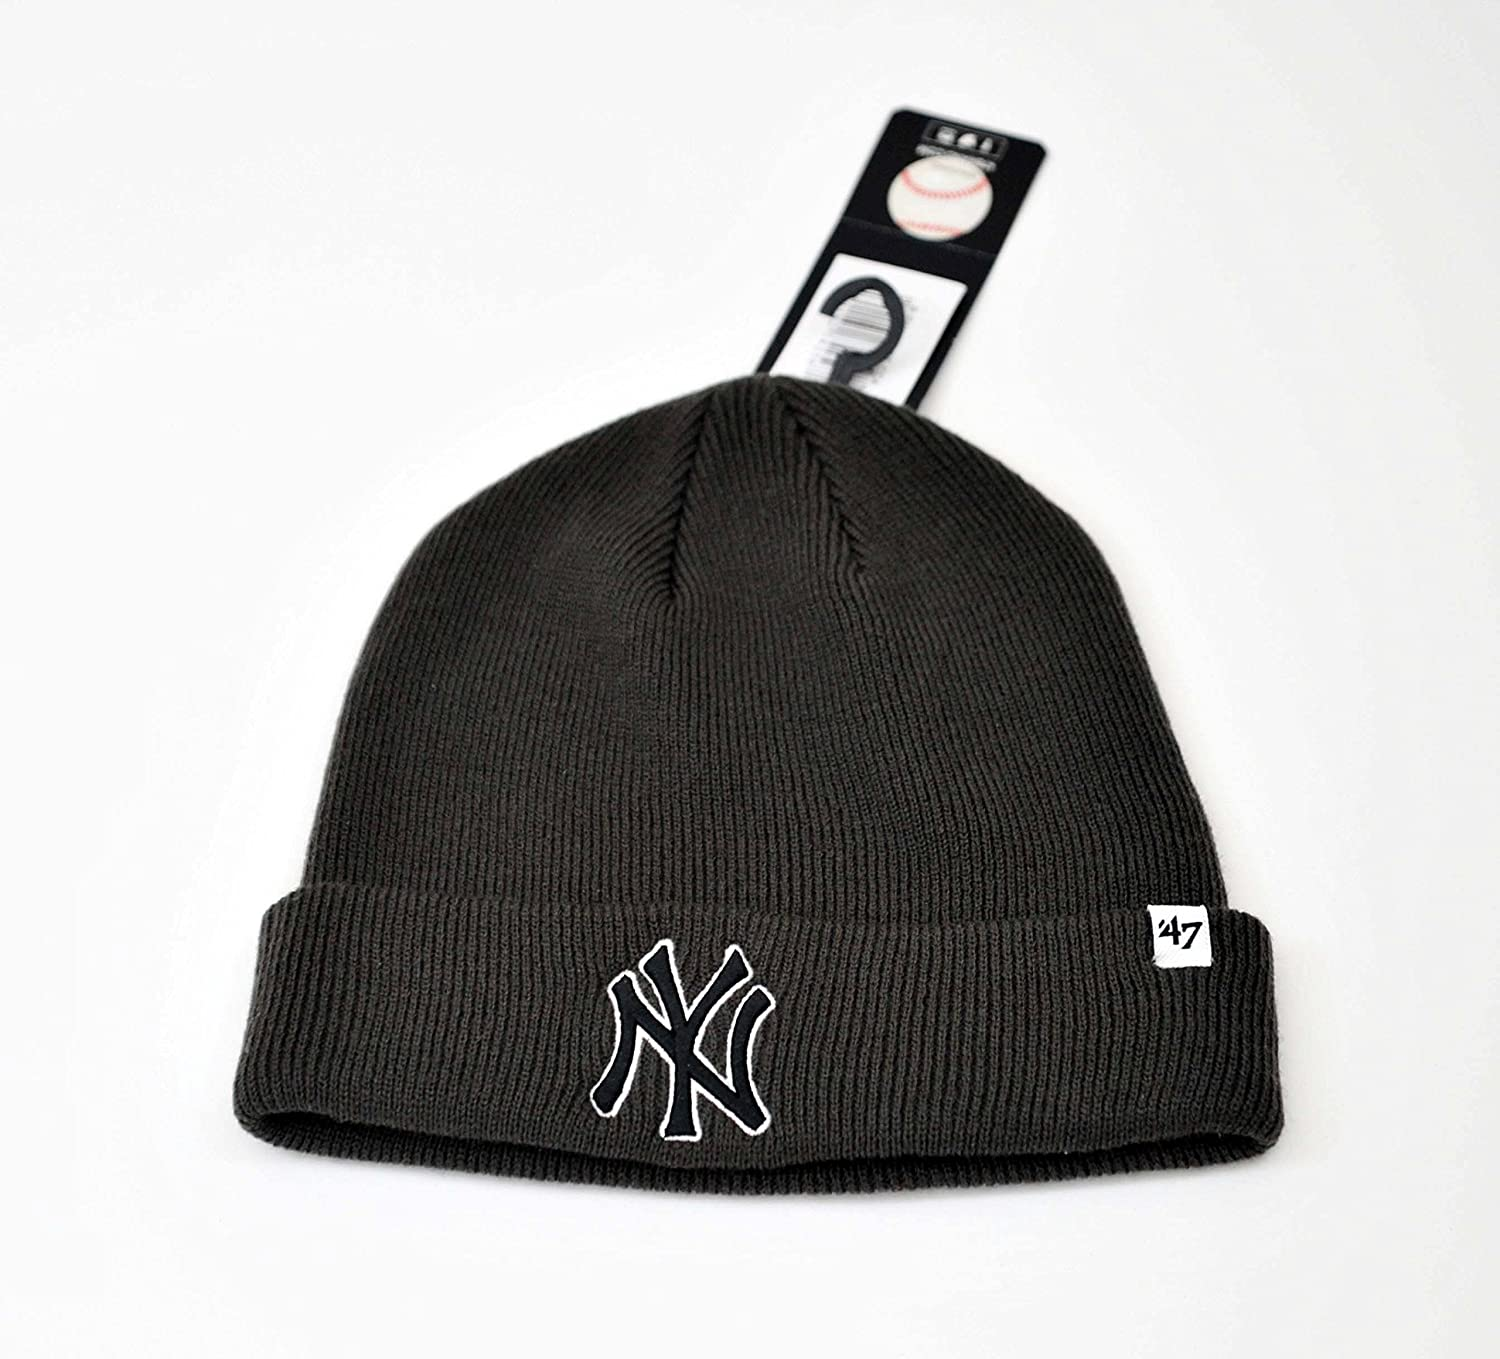 '47 MLB New York Yankees Brand Cuff Knit Hat Beanie - Charcoal Gray